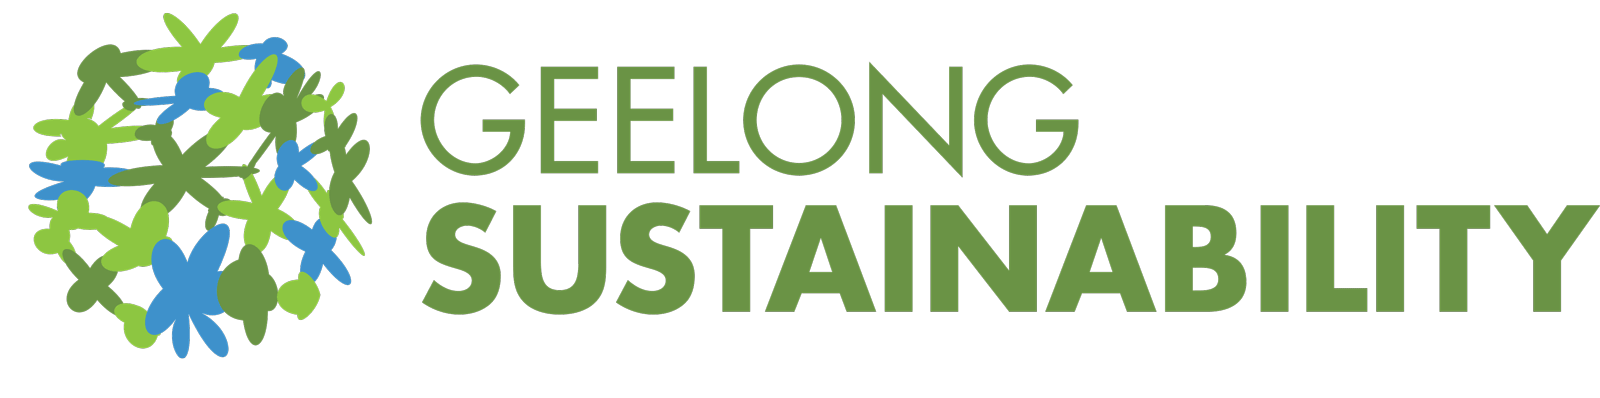 Geelong-Sustainability-Logo-RGB-Large.png